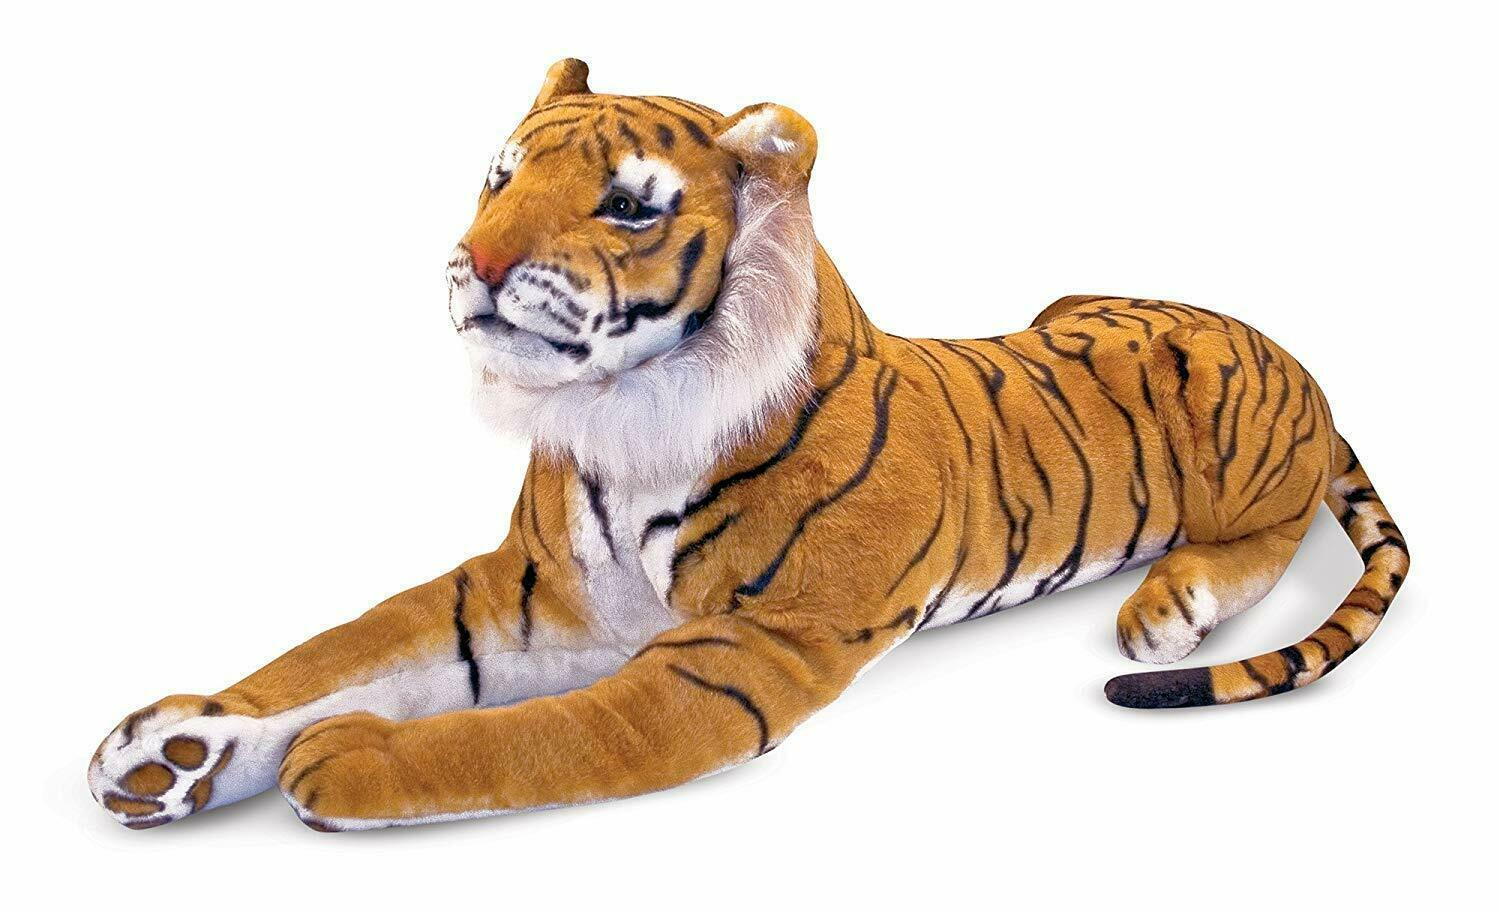 Giant Plush Tiger Soft & Cuddly Life-Like Details (Body About 47 IN, Tail 30 IN)